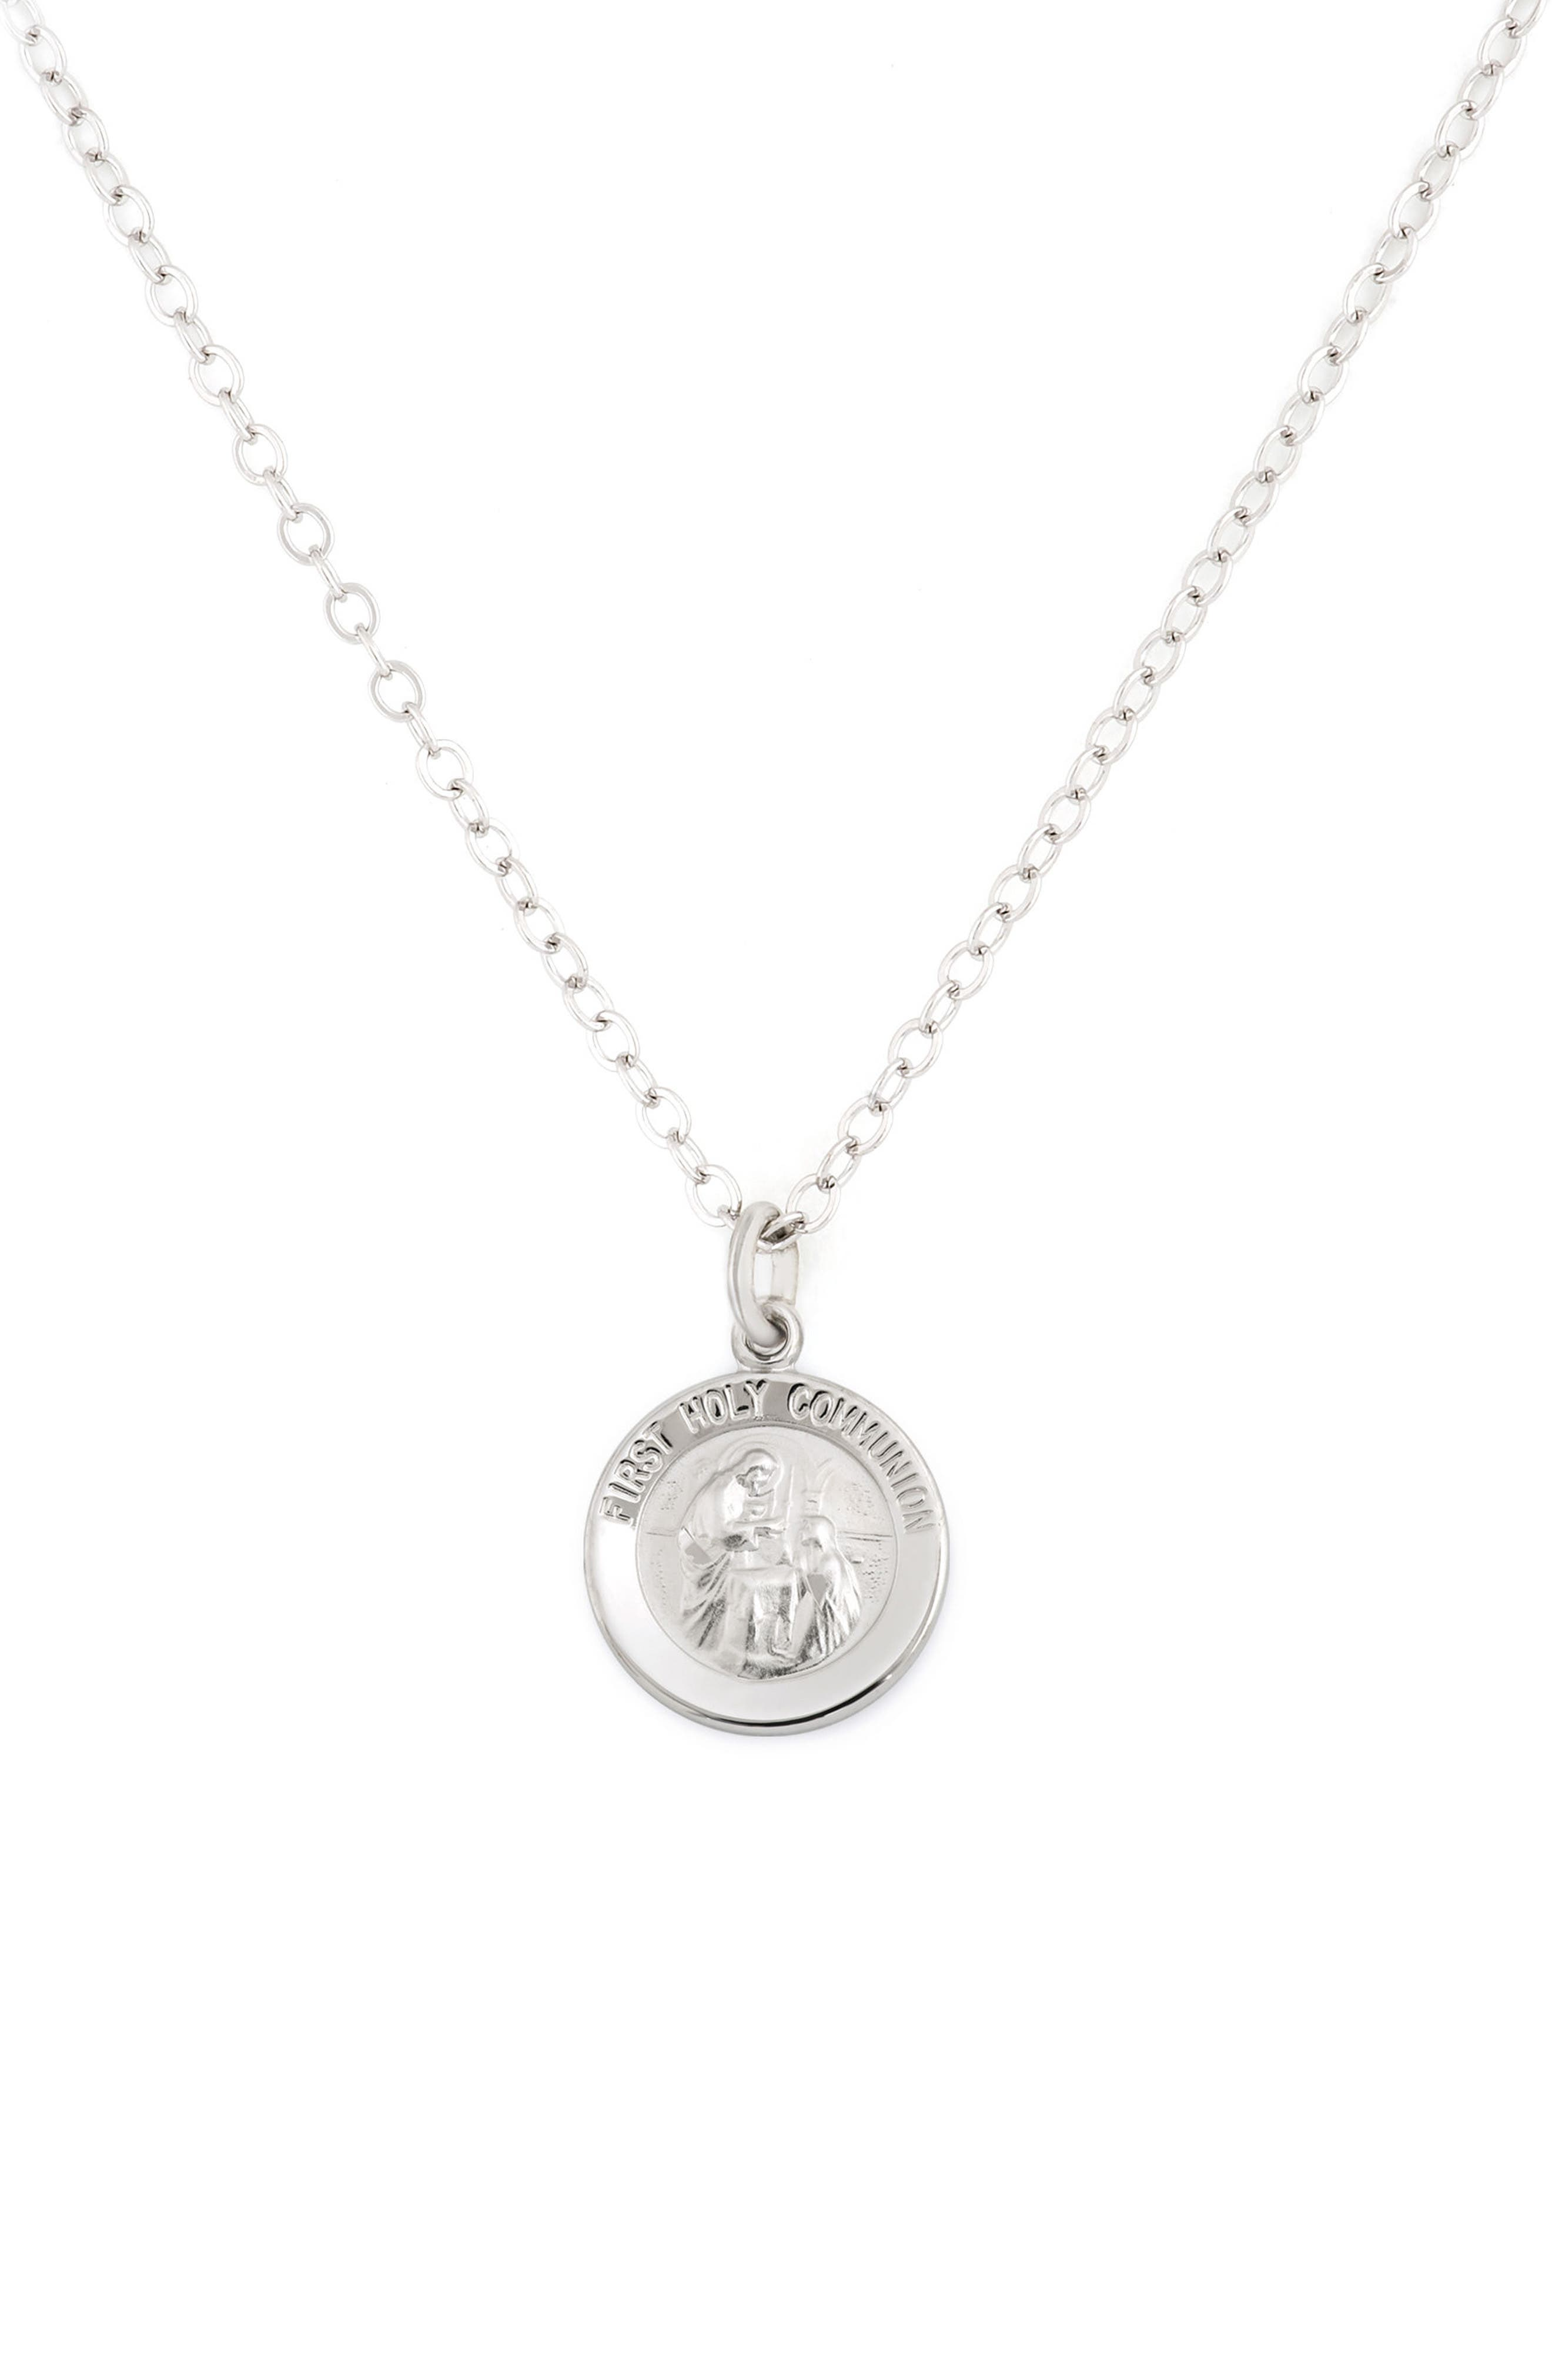 Main Image - Speidel First Communion Pendant Necklace (Girls)